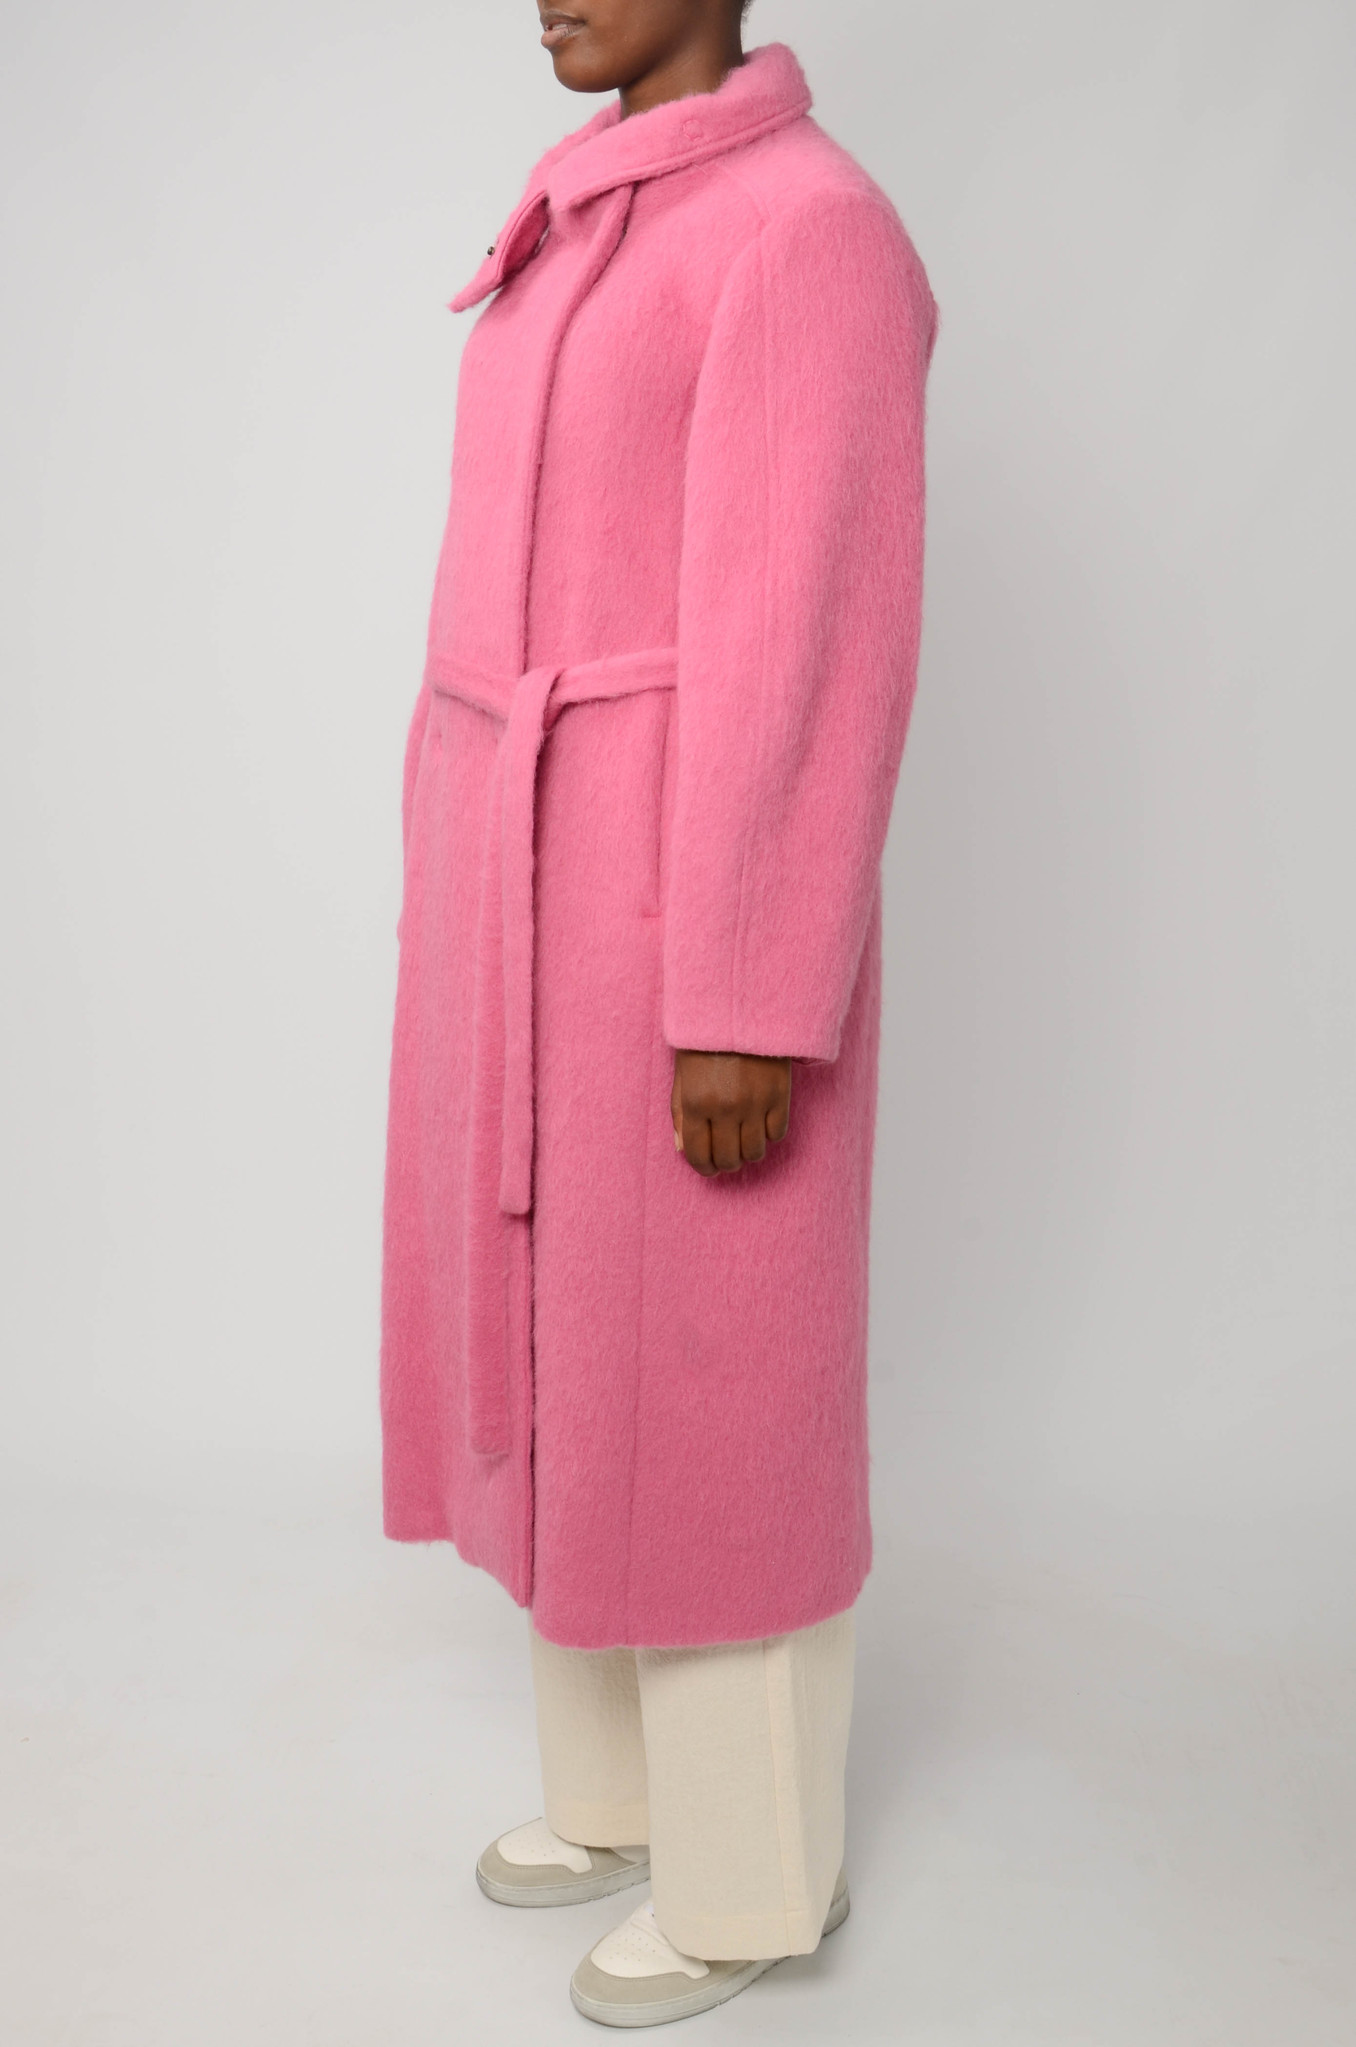 LONG BELTED COAT IN BRIGHT PINK-3